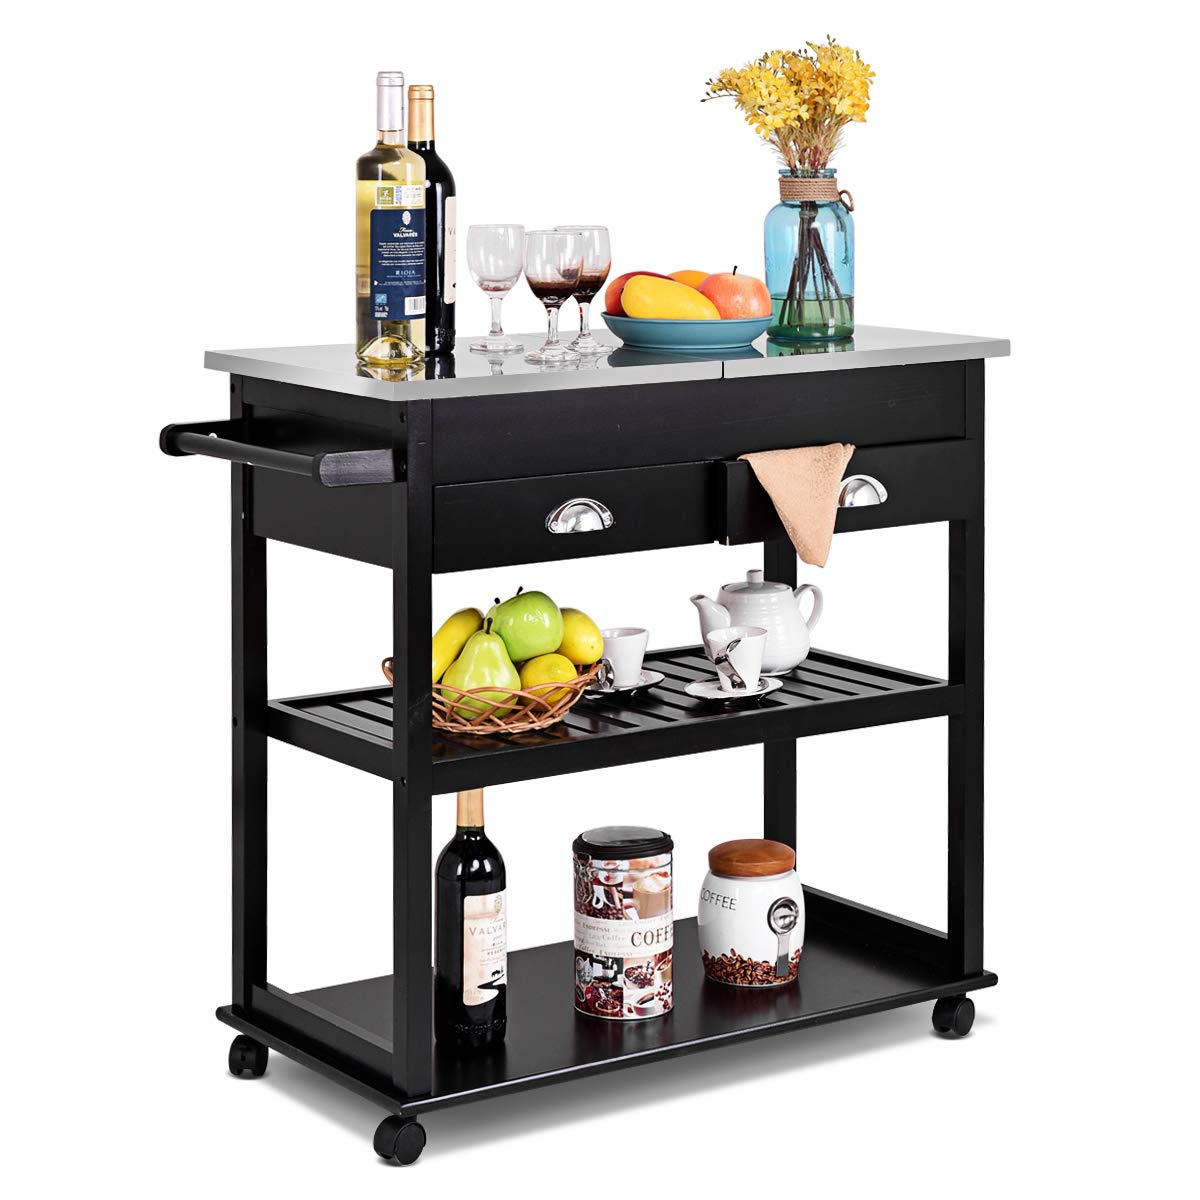 Giantex Rolling Kitchen Trolley Cart Stainless Steel-Flip Top W/Drawers &Casters